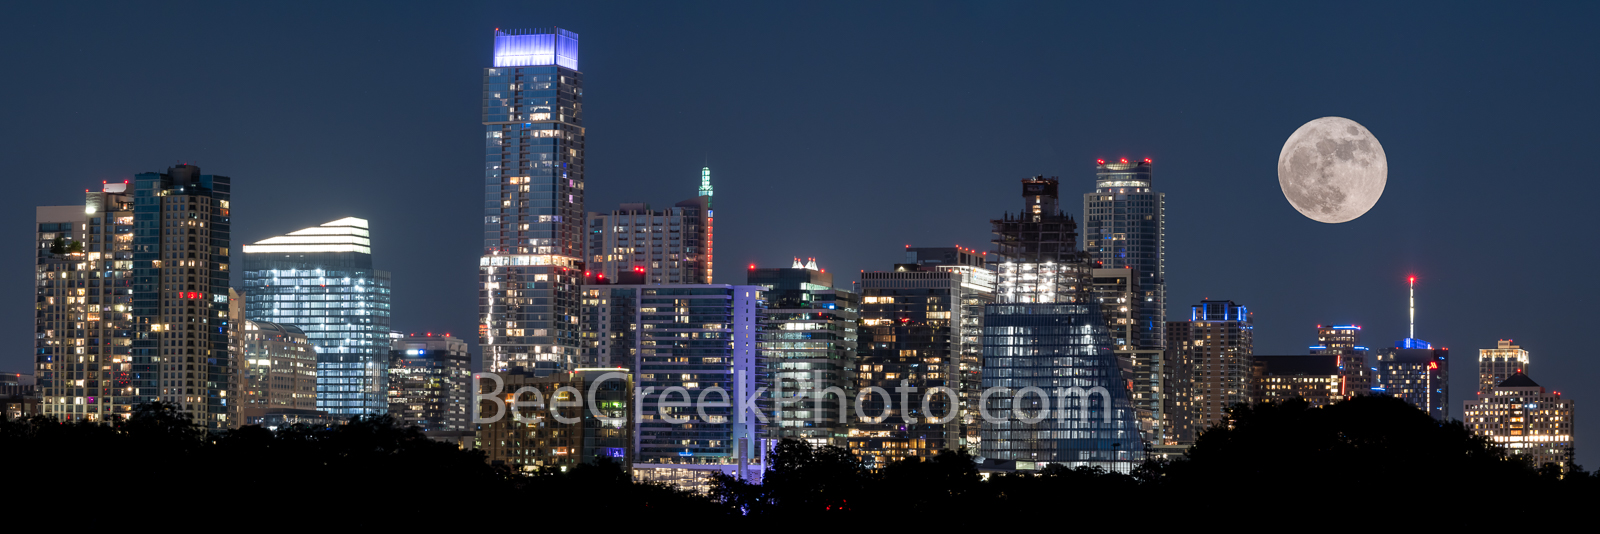 Austin Skyline with Moon Pano  - This the latest skyline from Zilker Park with a full moon in a composite.  This is one of the...